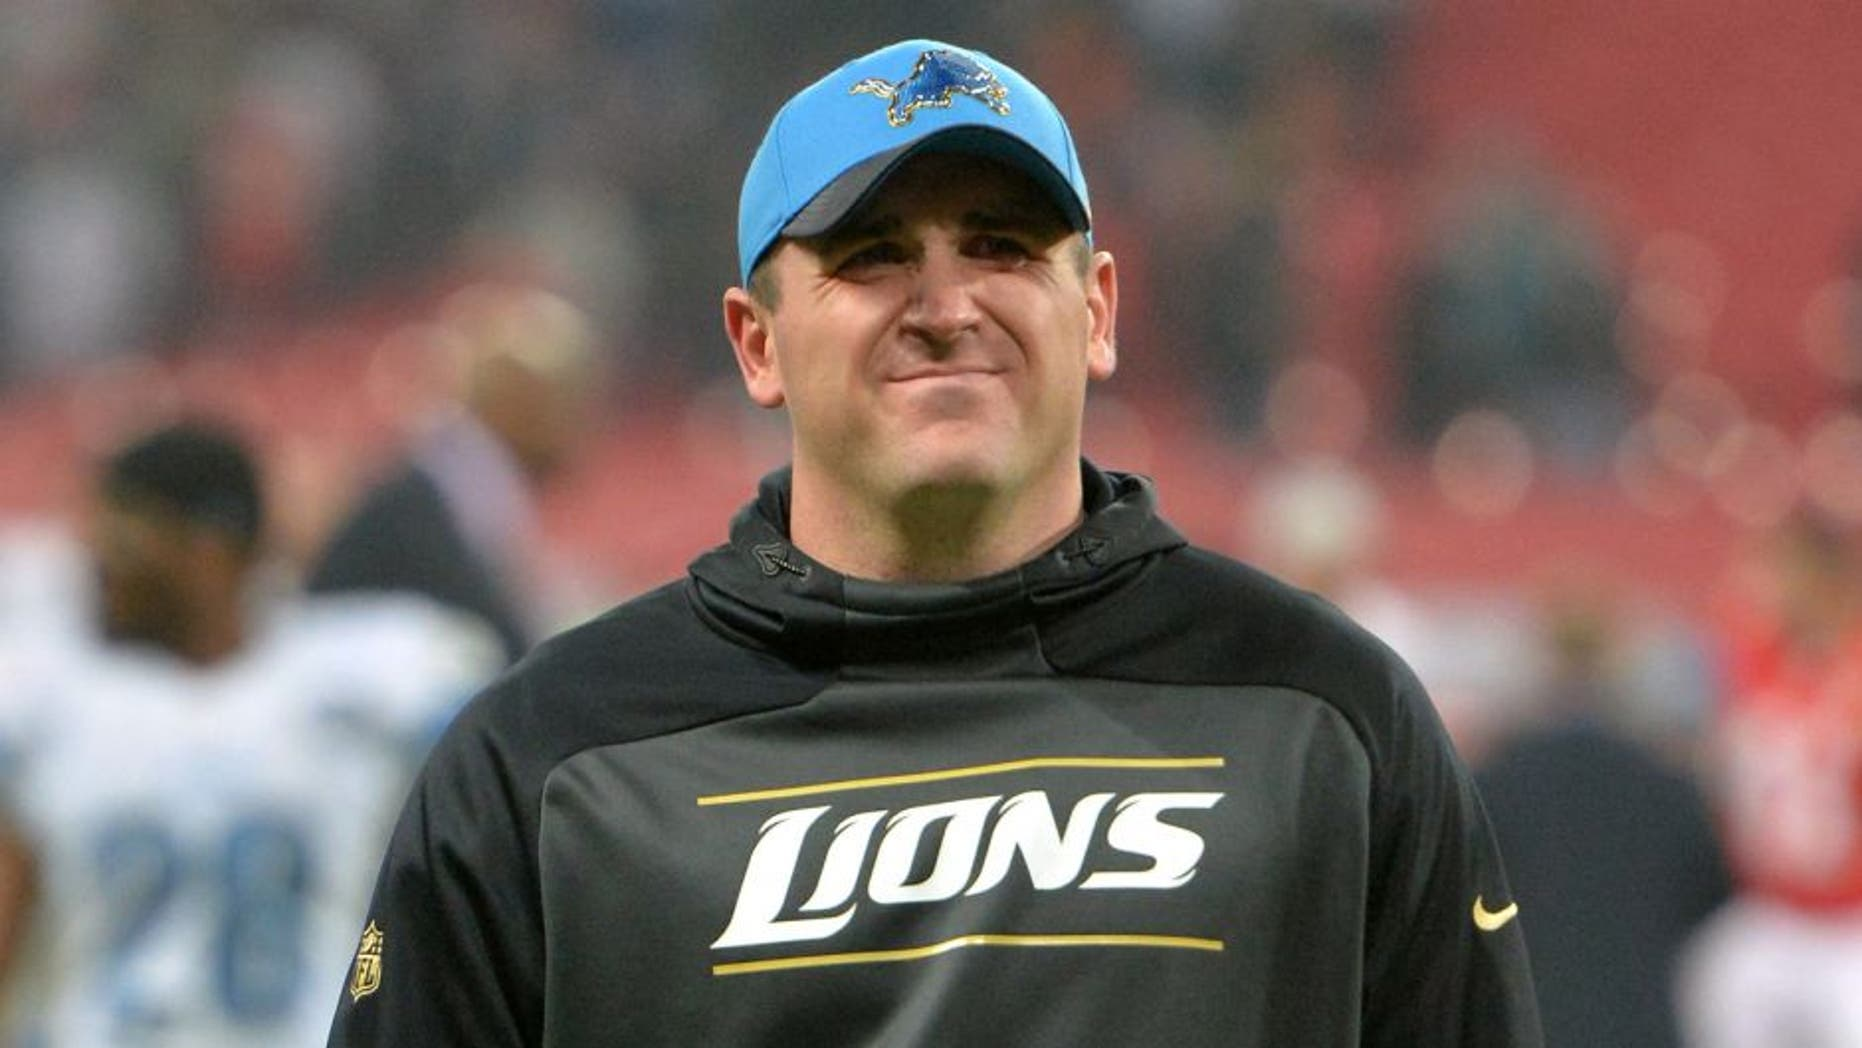 Nov 1, 2015; London, United Kingdom; Detroit Lions offensive coordinator Jim Bob Cooter walks off the field after a 45-10 loss against the Kansas City Chiefs during game 14 of the NFL International Series at Wembley Stadium. Mandatory Credit: Kirby Lee-USA TODAY Sports